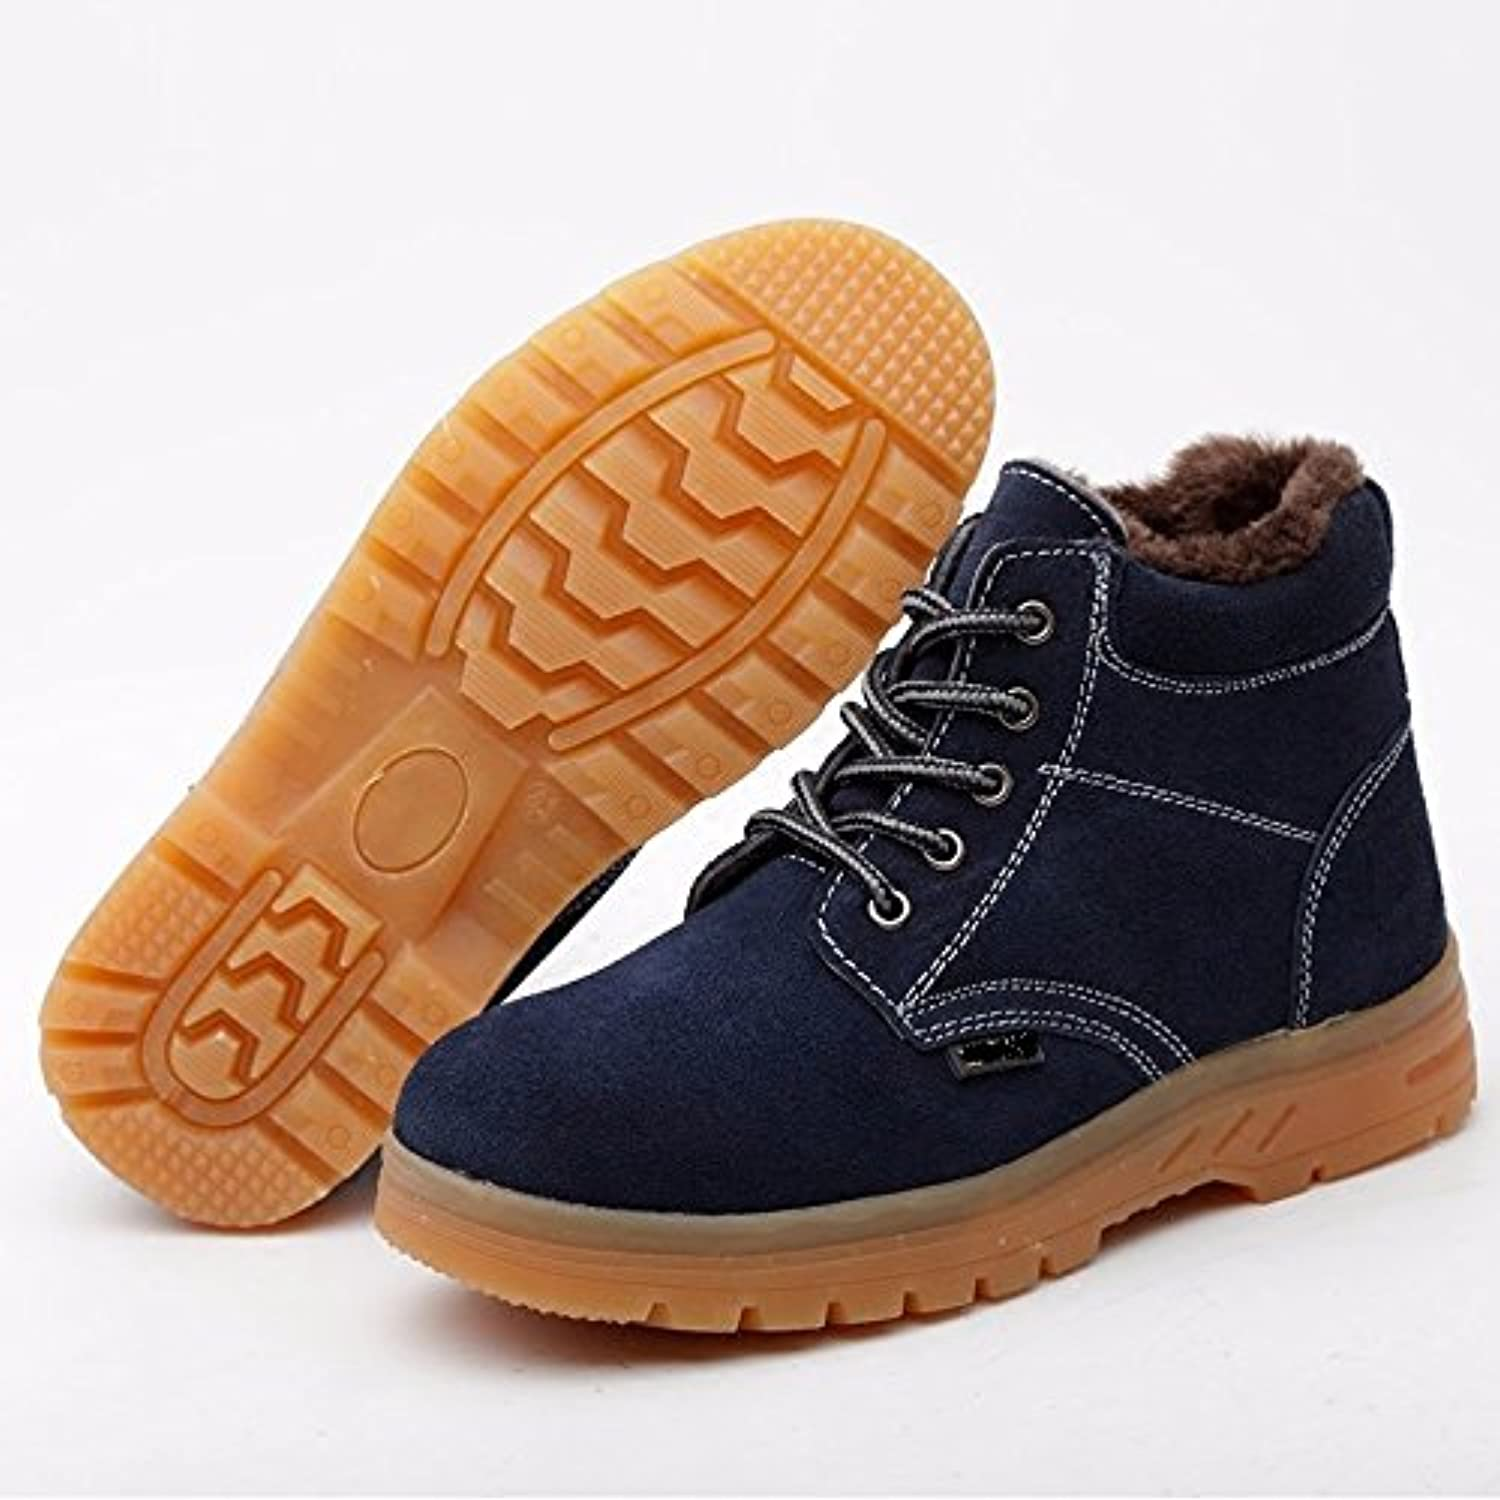 Outdoor warm Martin boots for men